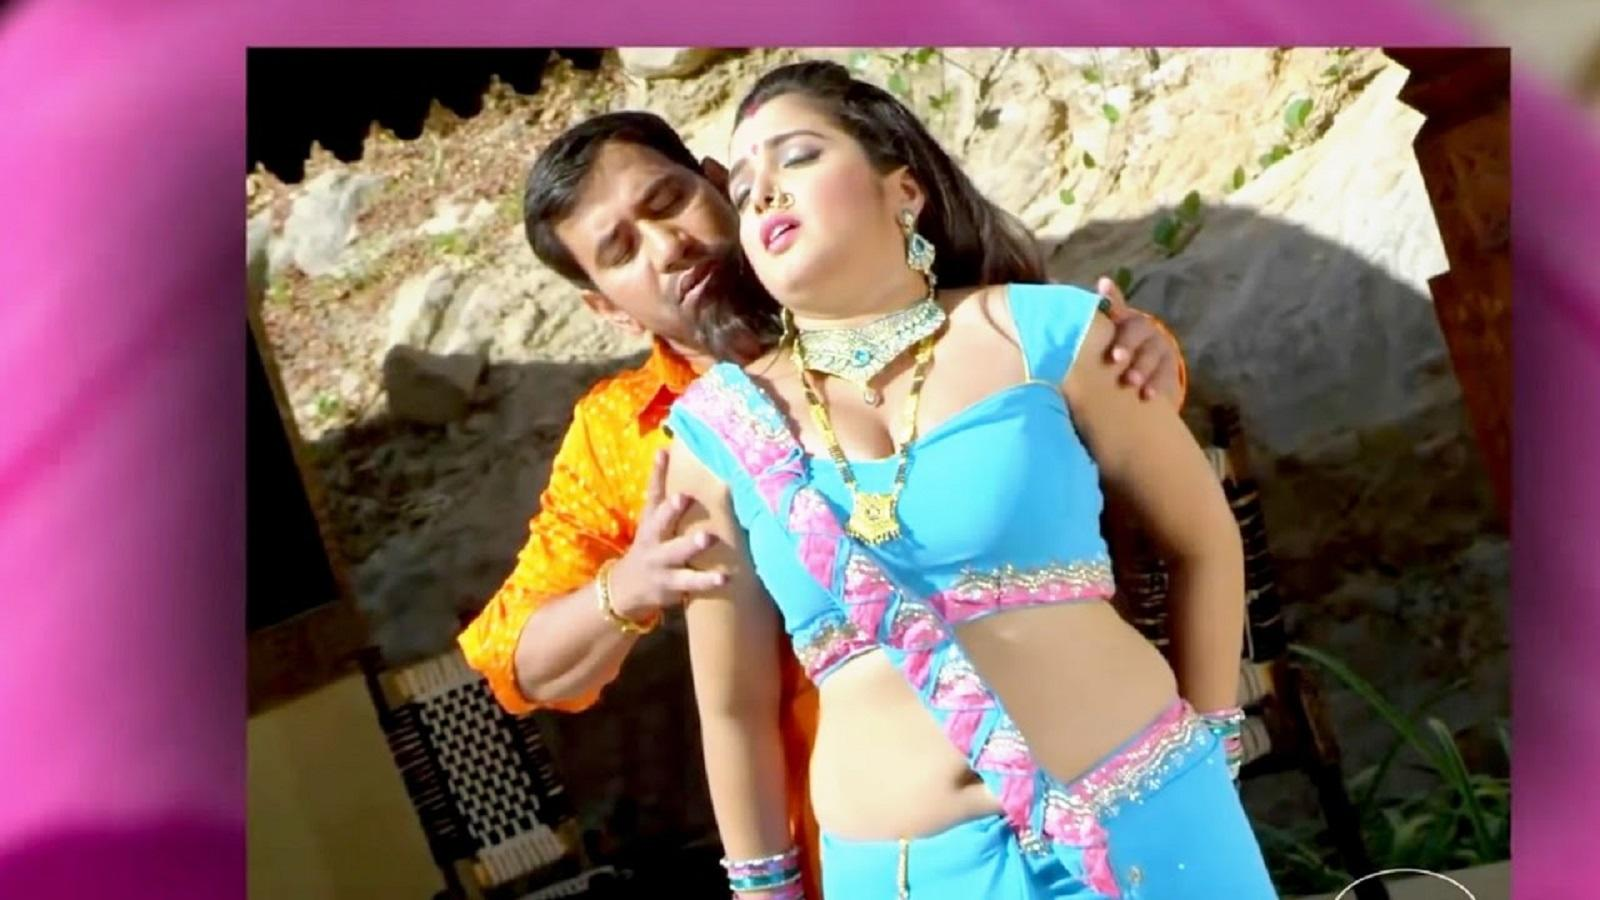 Watch: Hit Bhojpuri Song 'Chaddar Hili Ki Na Jaan' from 'Nirahua Chalal  Sasural 2' Ft  Dinesh Lal Yadav and Aamrapali Dubey